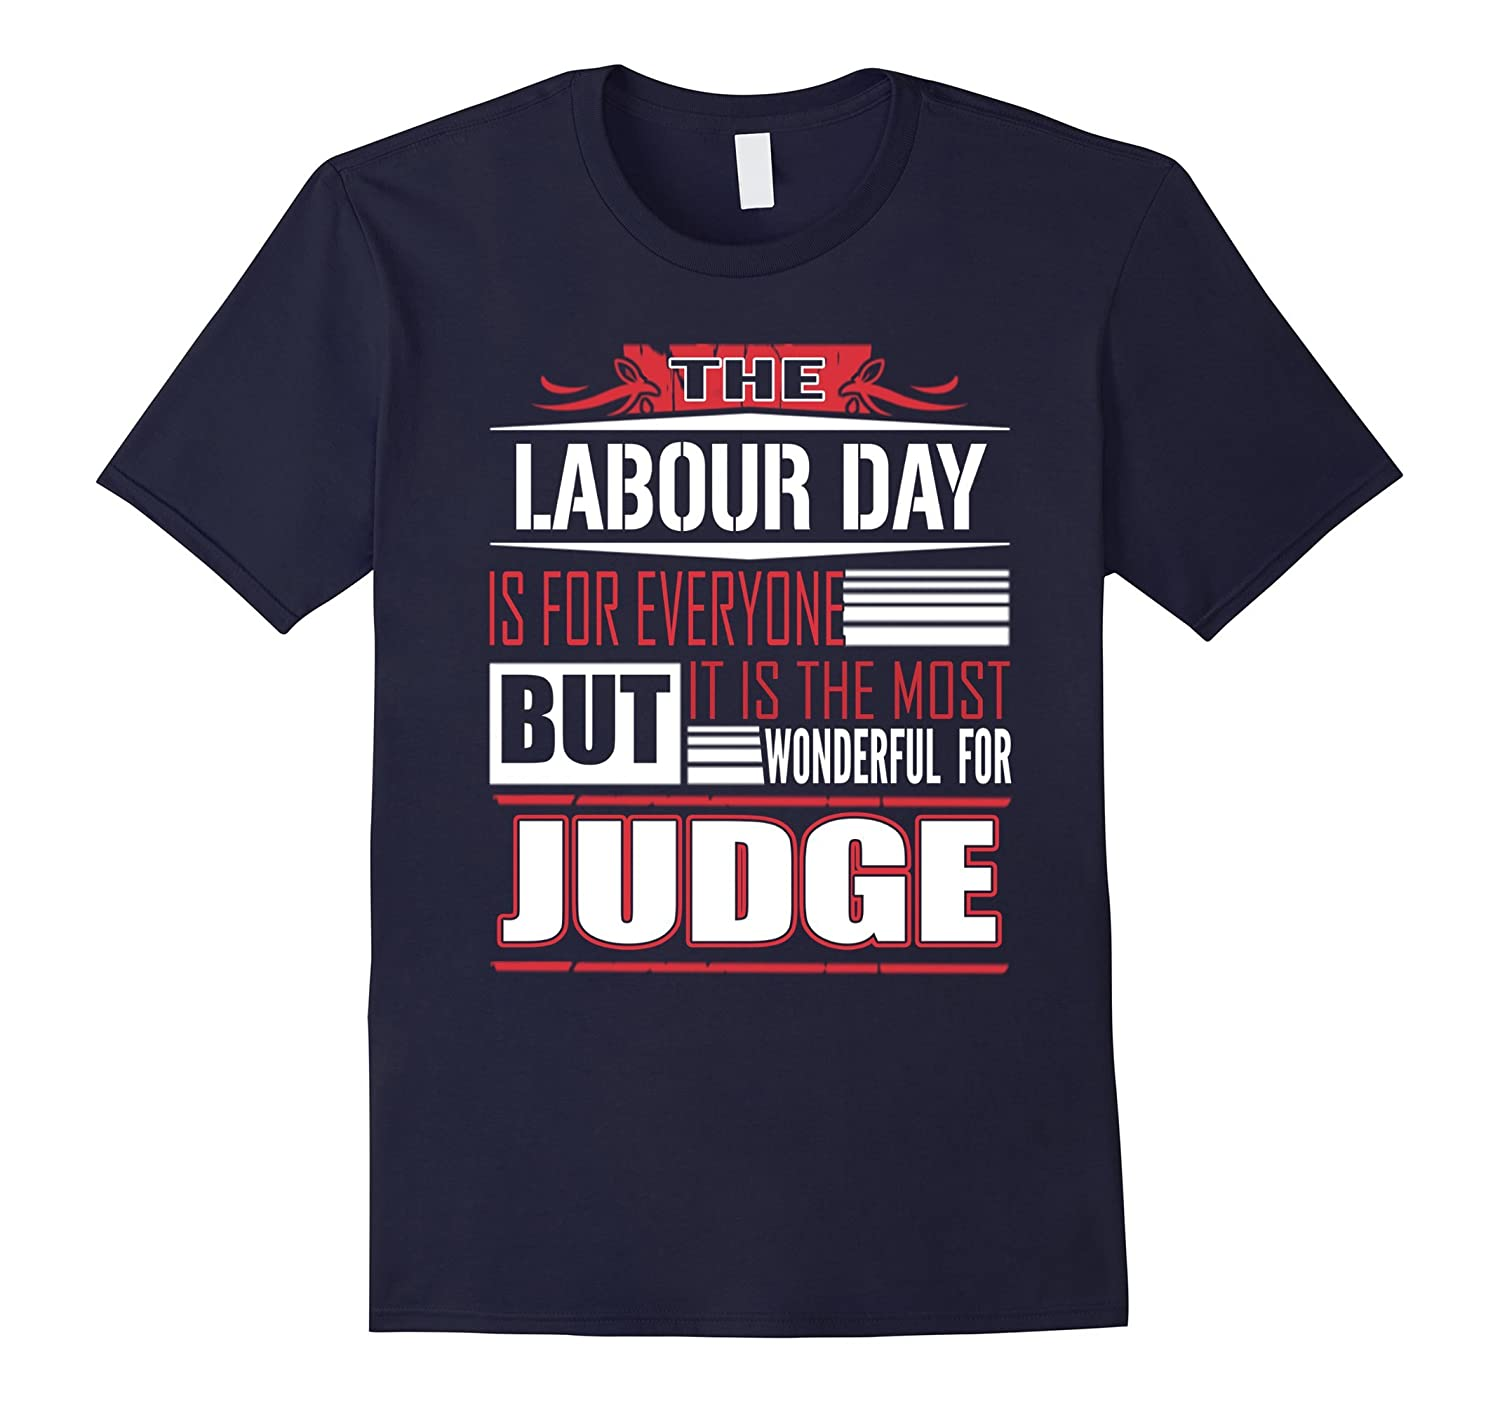 Labour Day awesome is for Judge, gifts for Judge T Shirt-BN